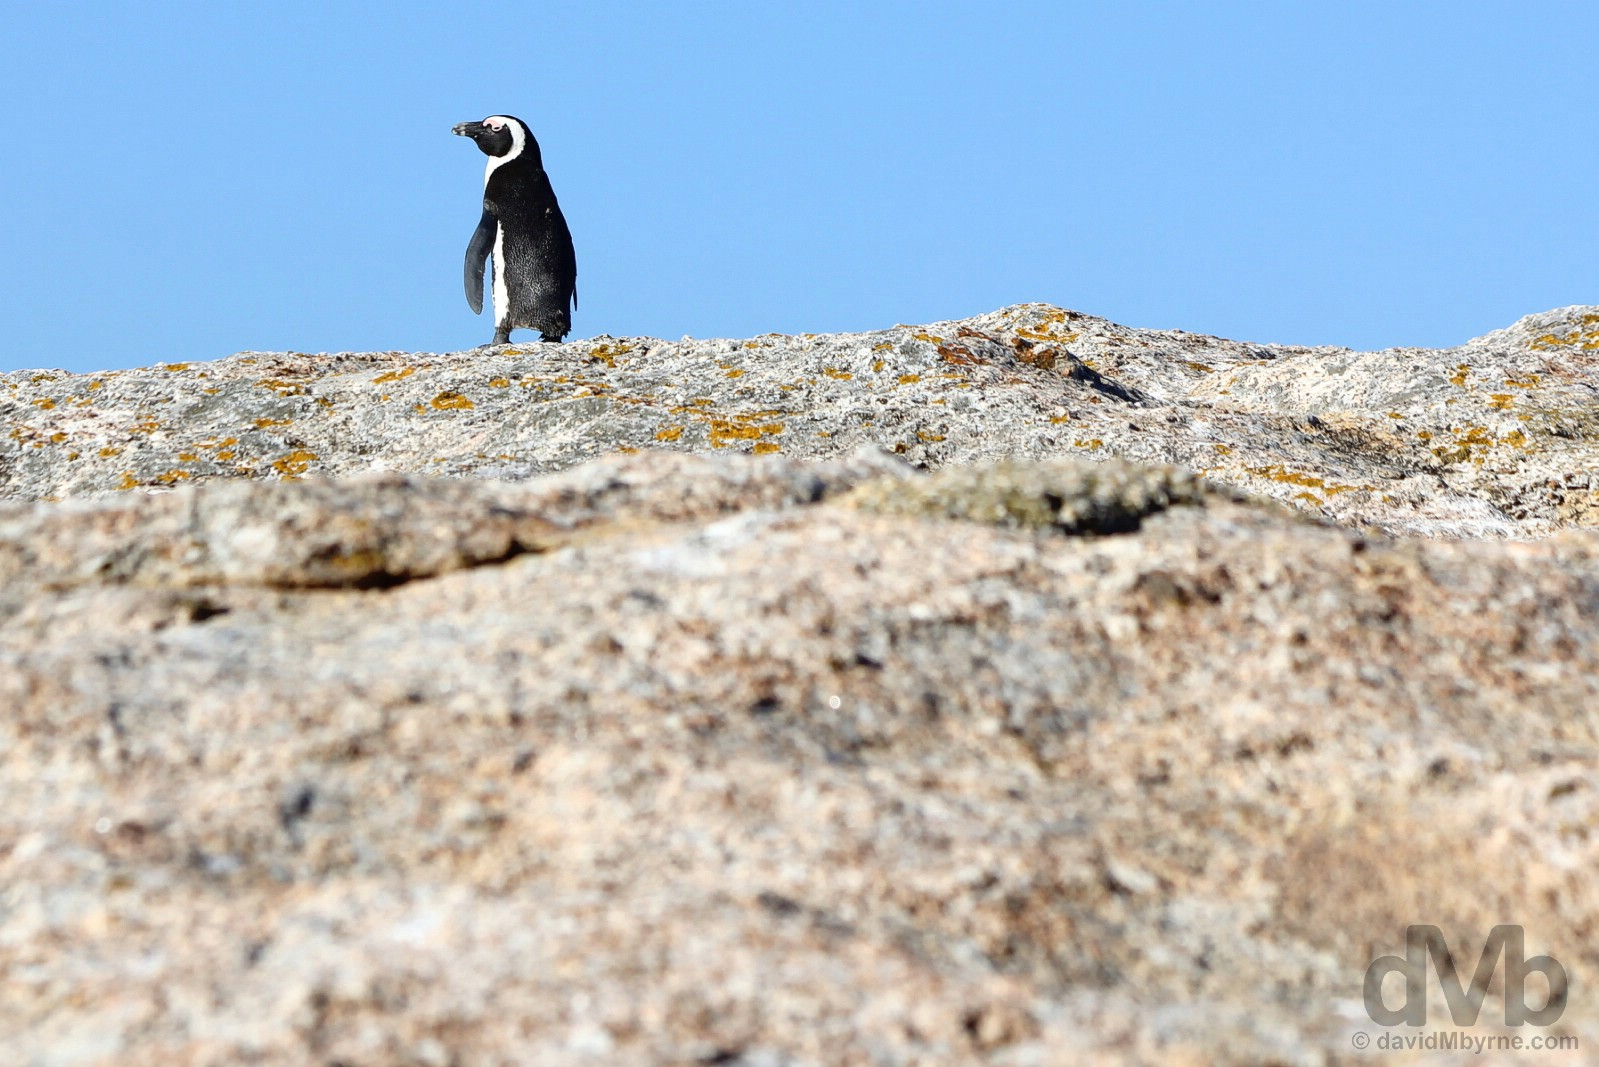 A lone African Penguin on the rocks of Boulders Beach on the shores of False Bay, Cape Peninsula, Western Cape, South Africa. February 17, 2017.